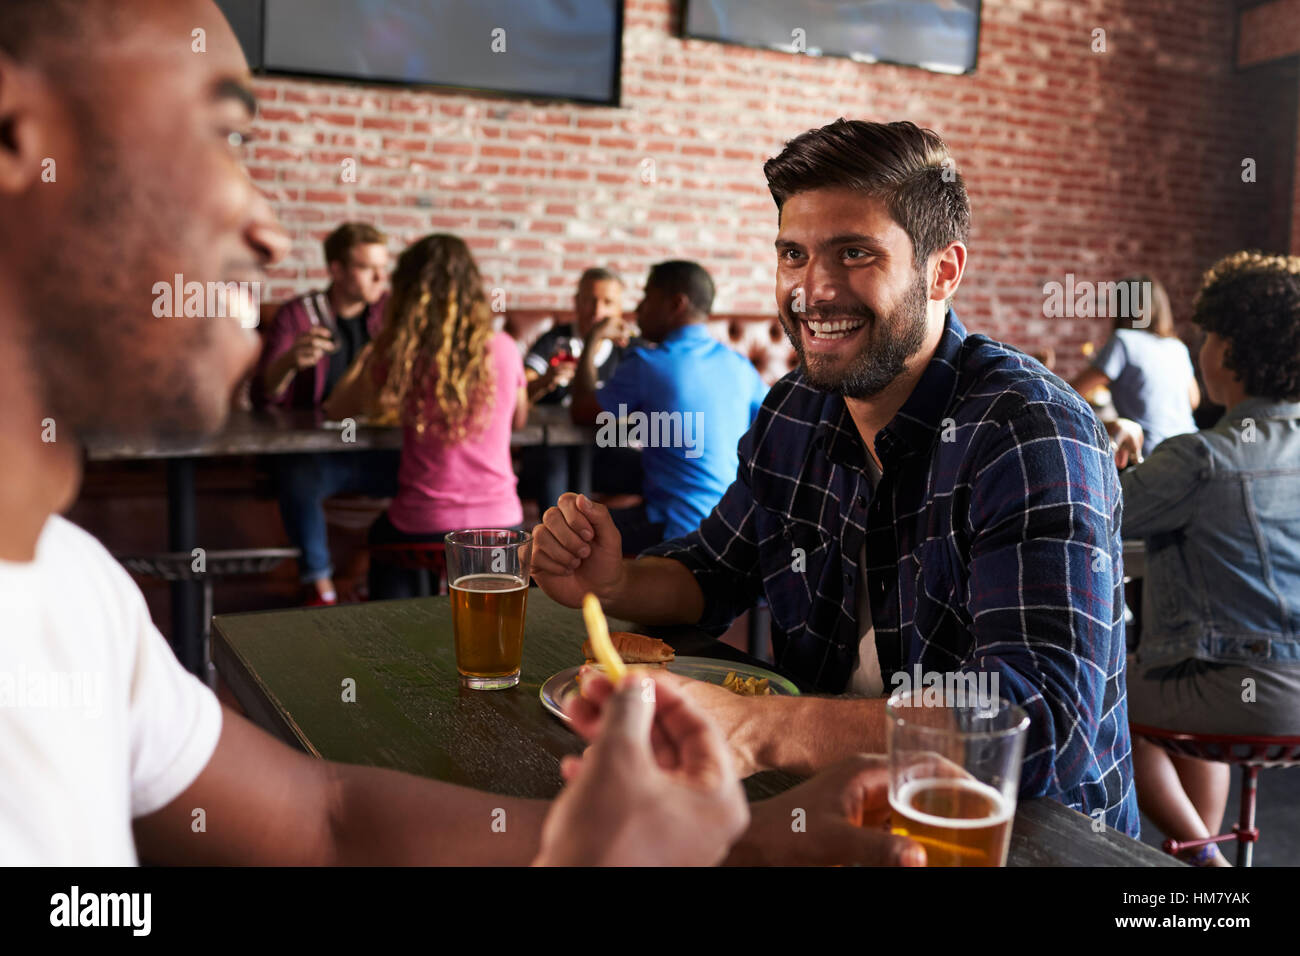 Friends Eating Out In Sports Bar With Screens In Background - Stock Image